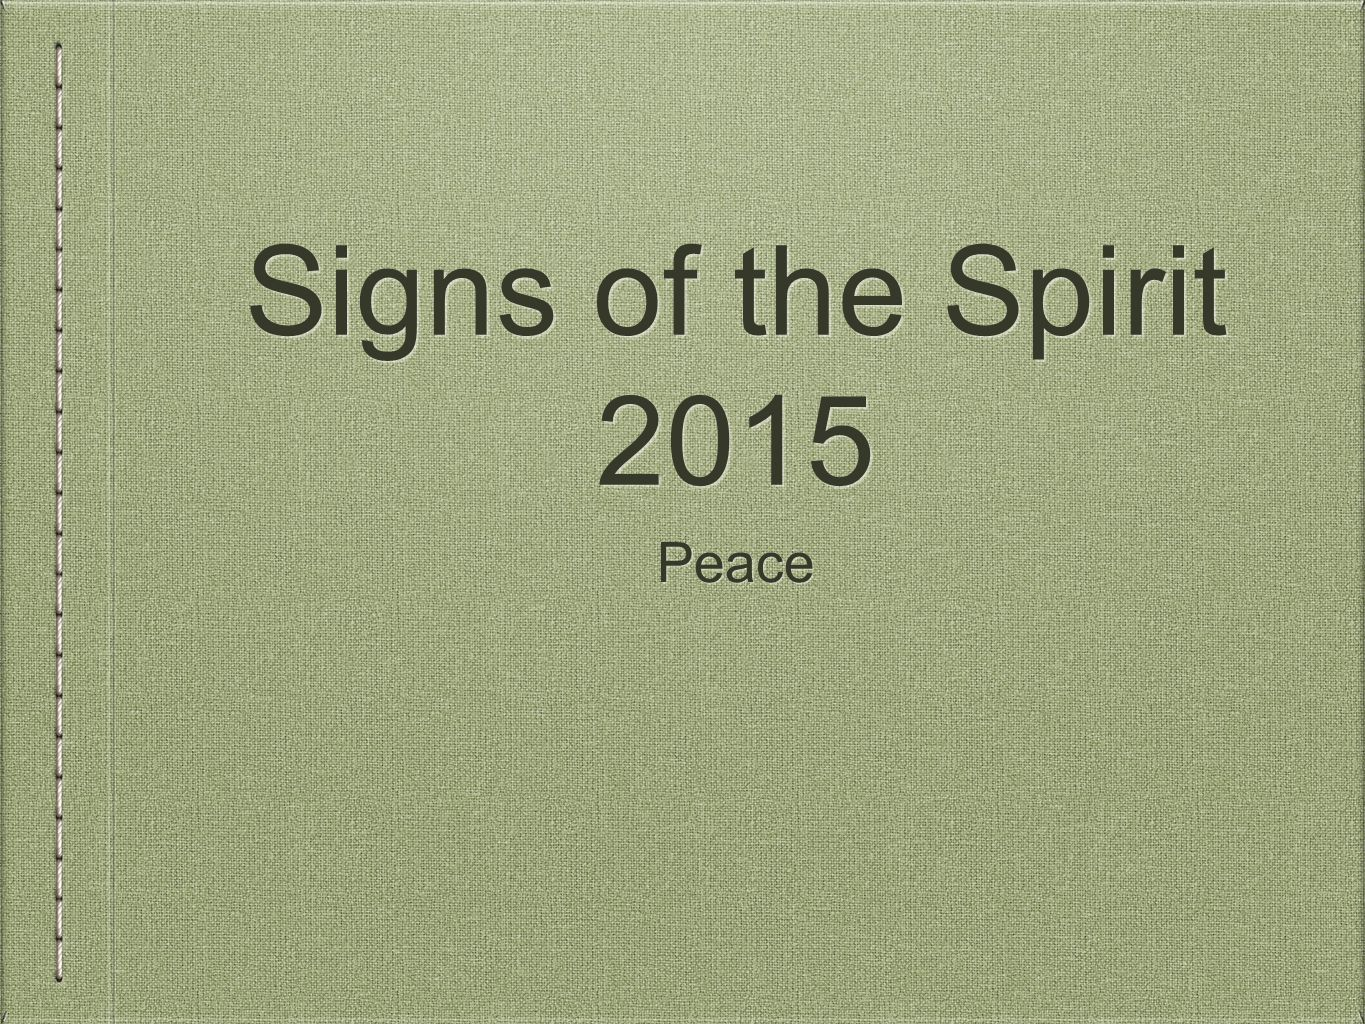 Signs of the Spirit 2015 Peace